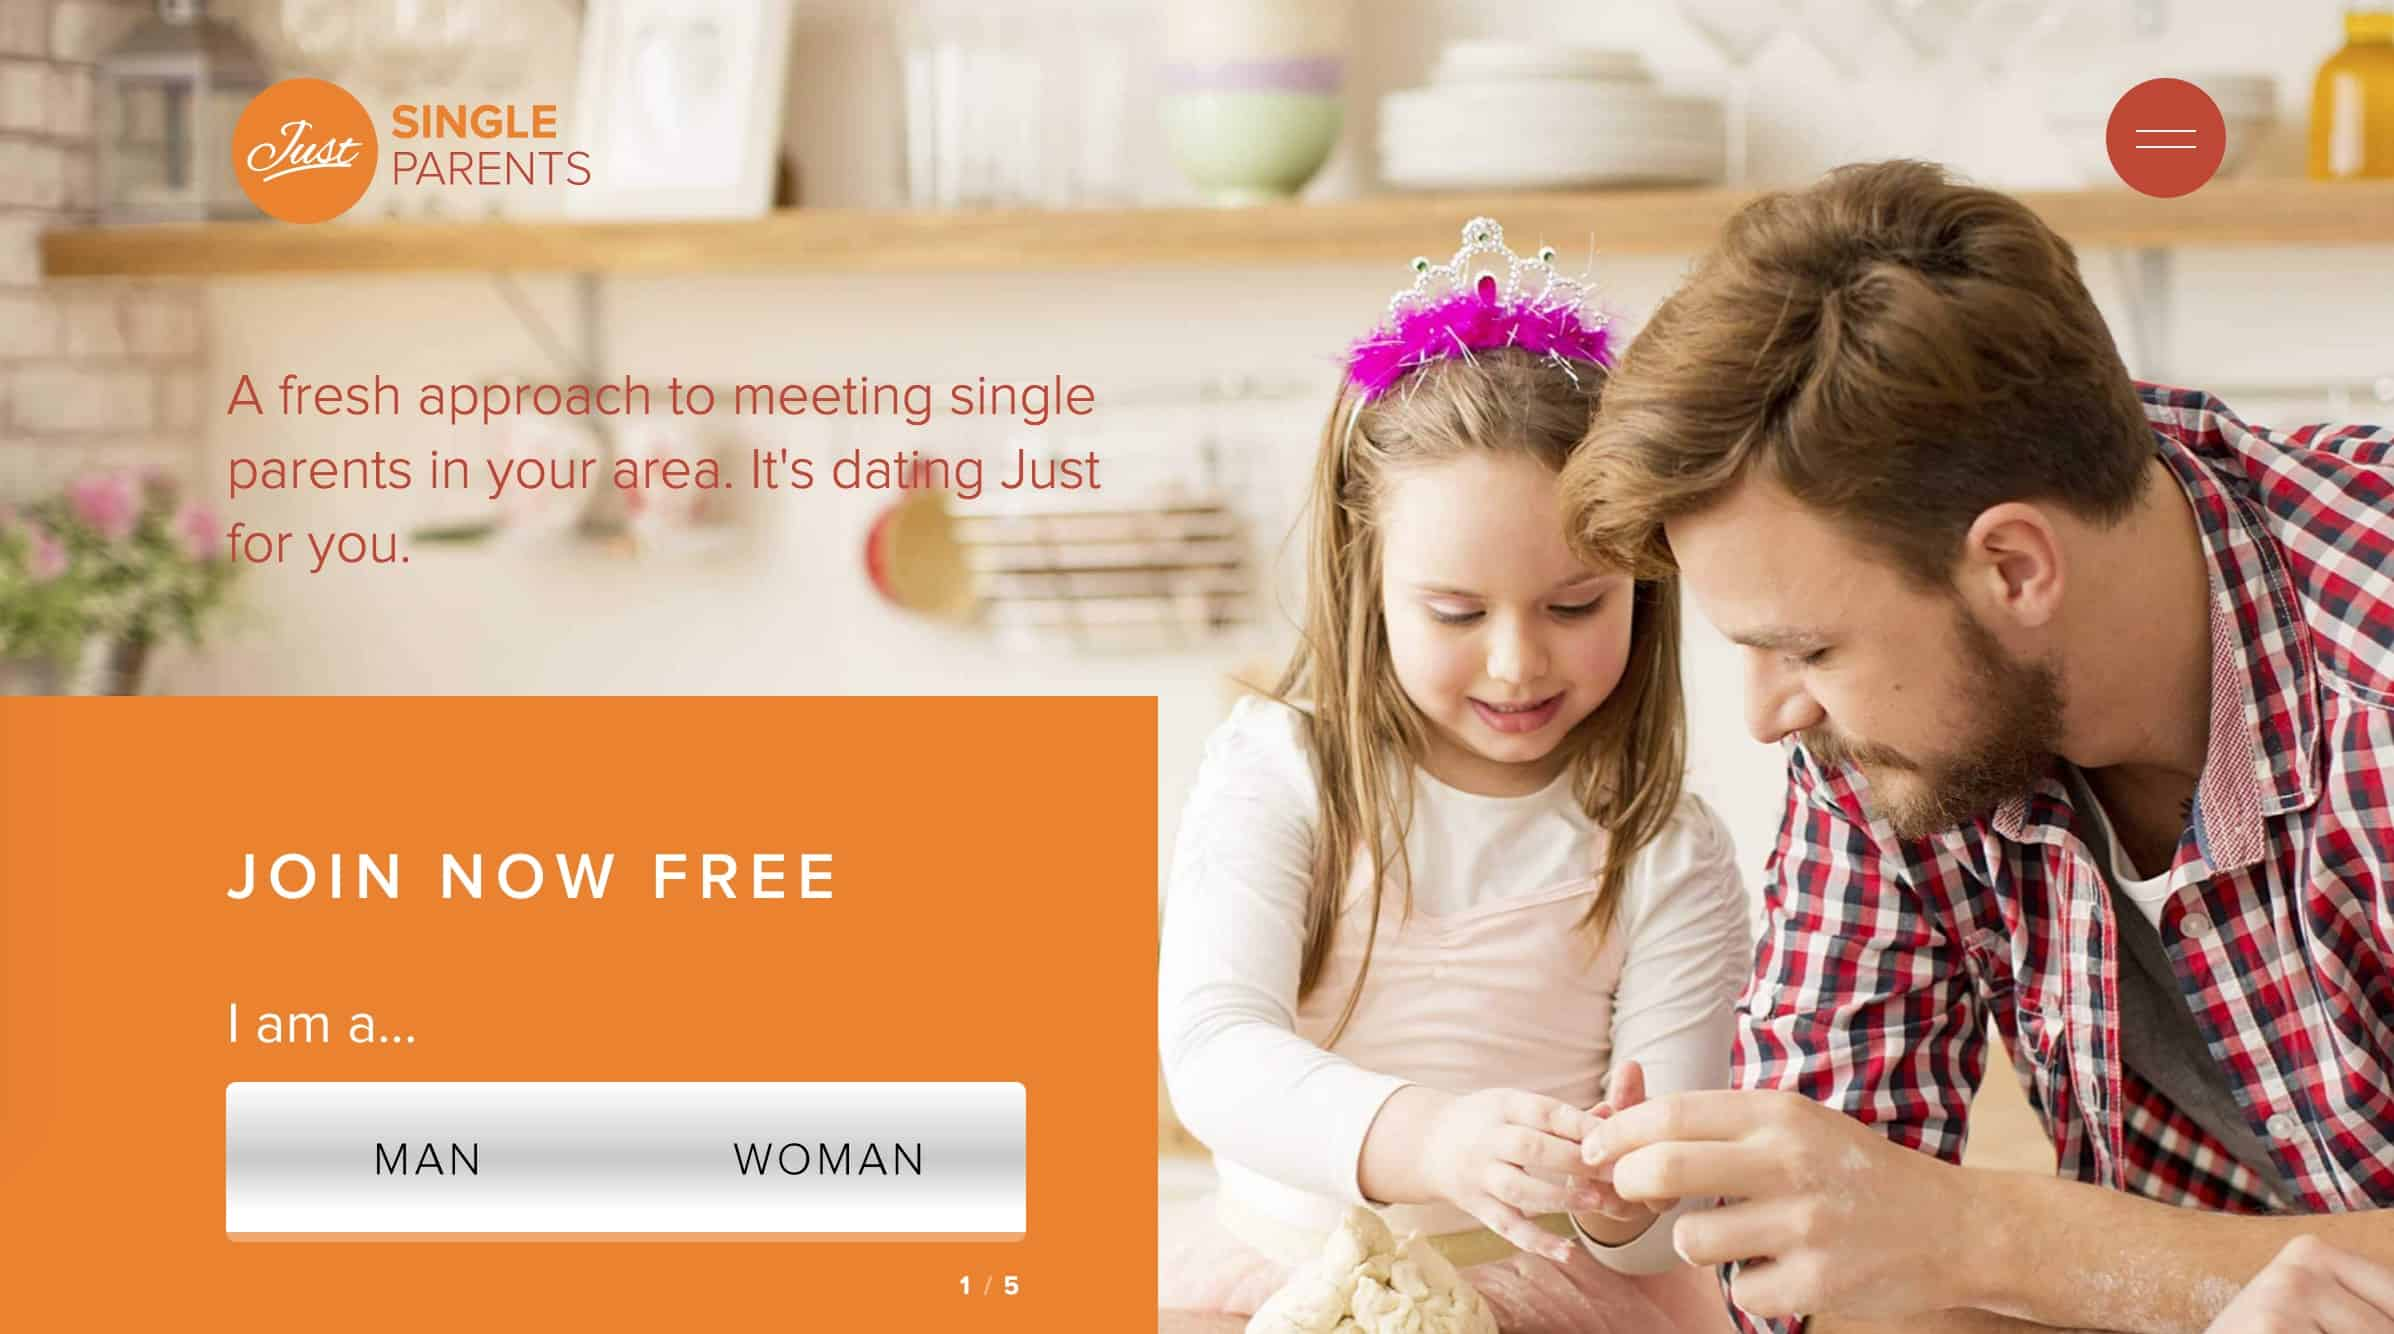 chadwicks single parent dating site Discover how lovebeginsat is here for single parents dating with access to our chatrooms, and exclusive dating events sign up for your free profile today.